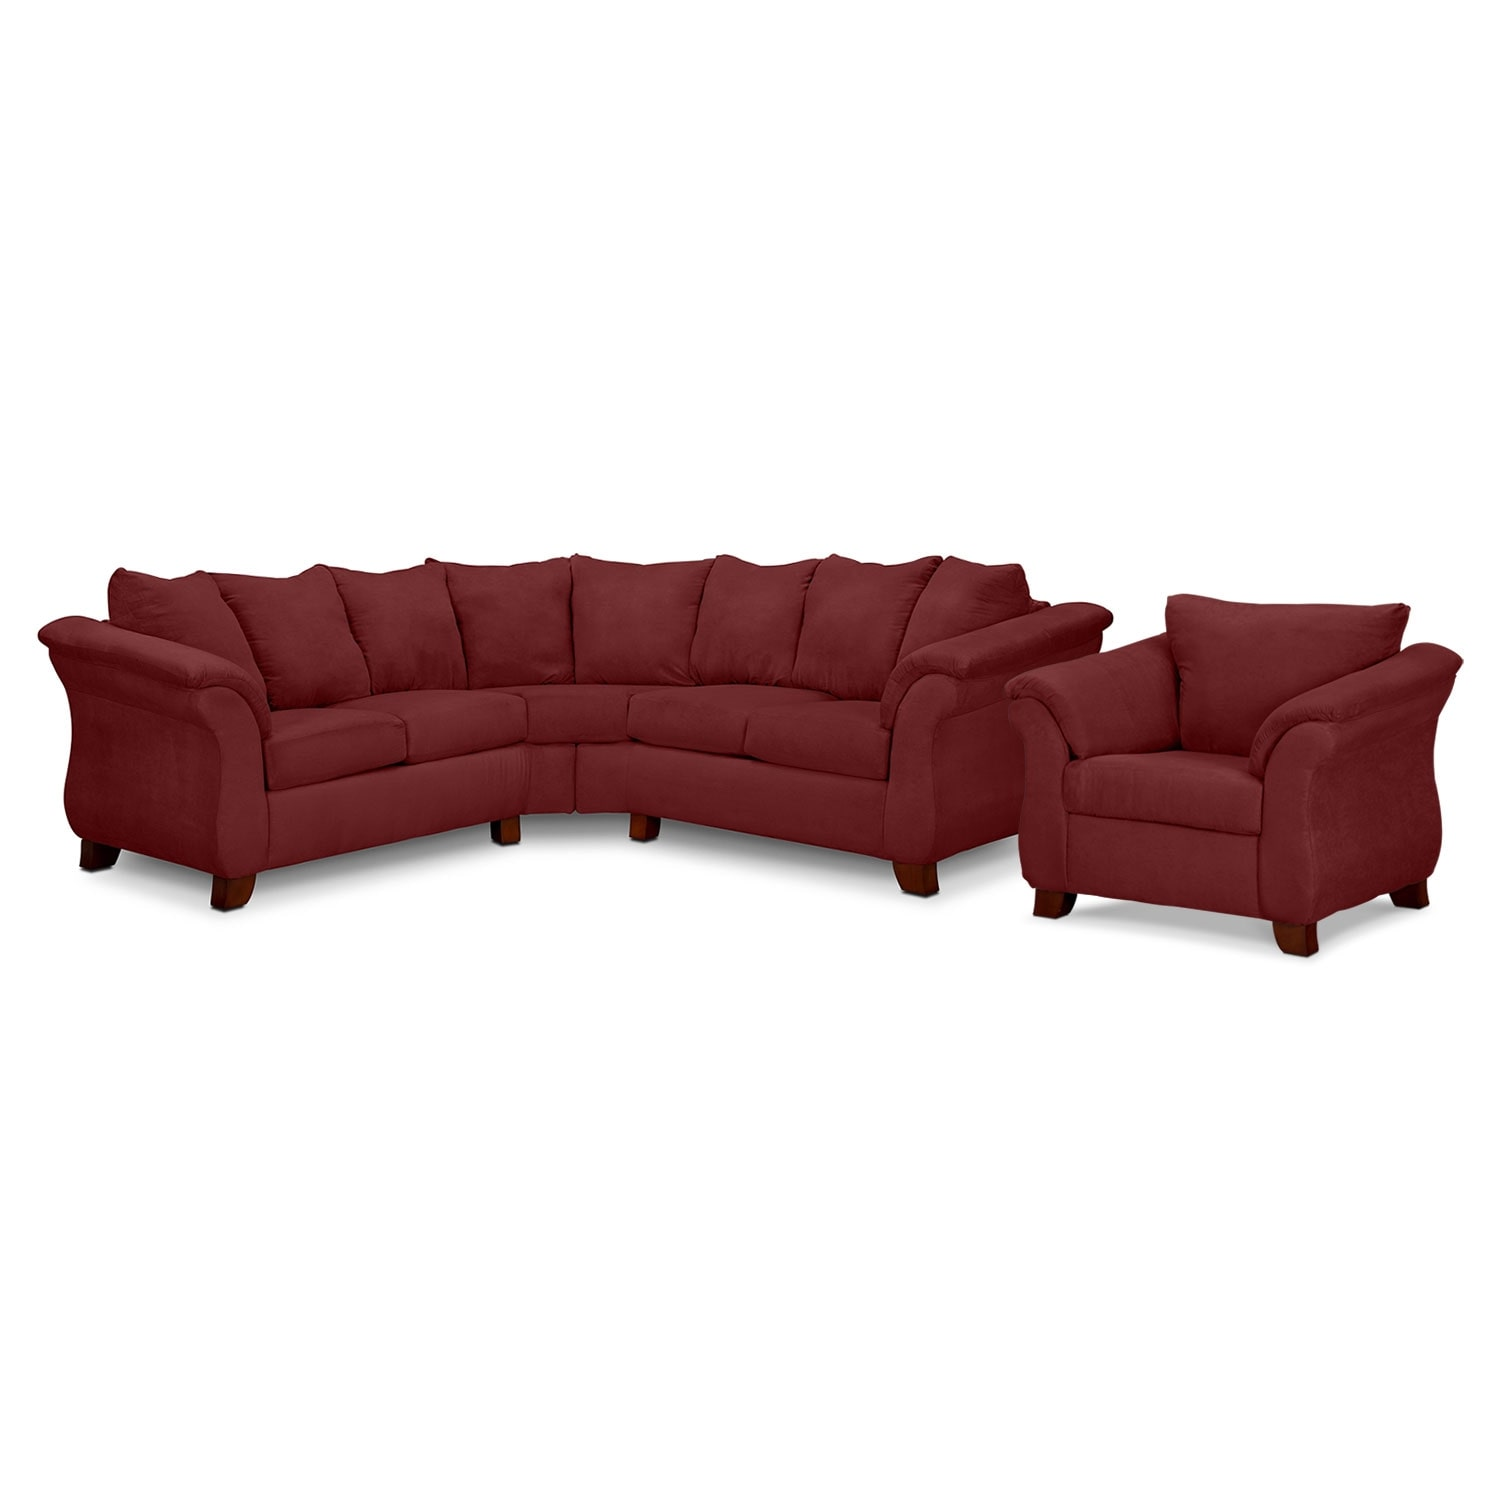 Living Room Furniture - Adrian Red II 2 Pc. Sectional and Chair